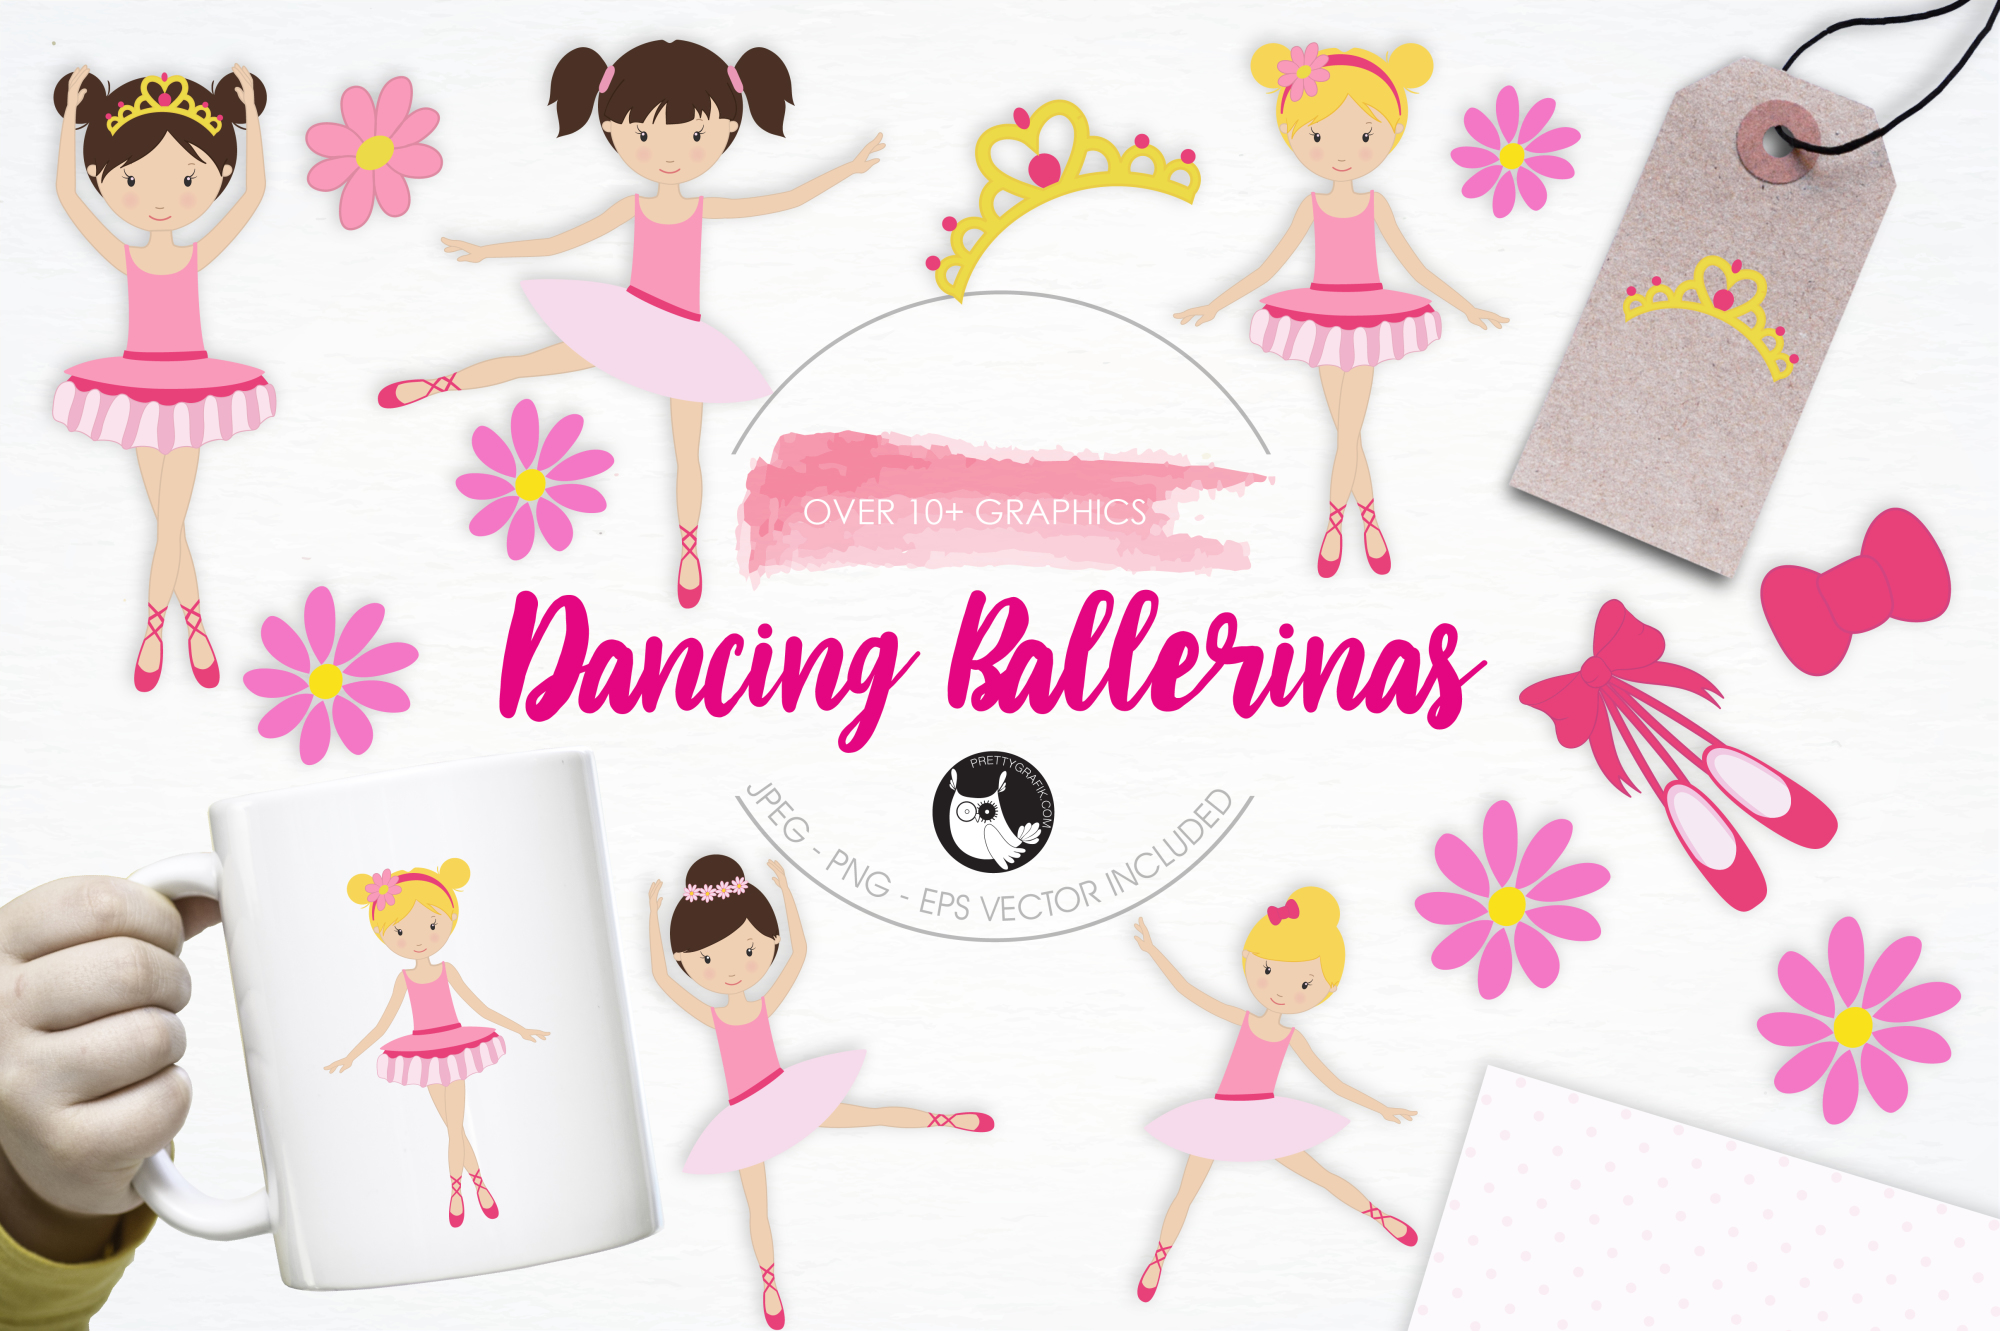 Dancing Ballerinas graphics and illustrations example image 1